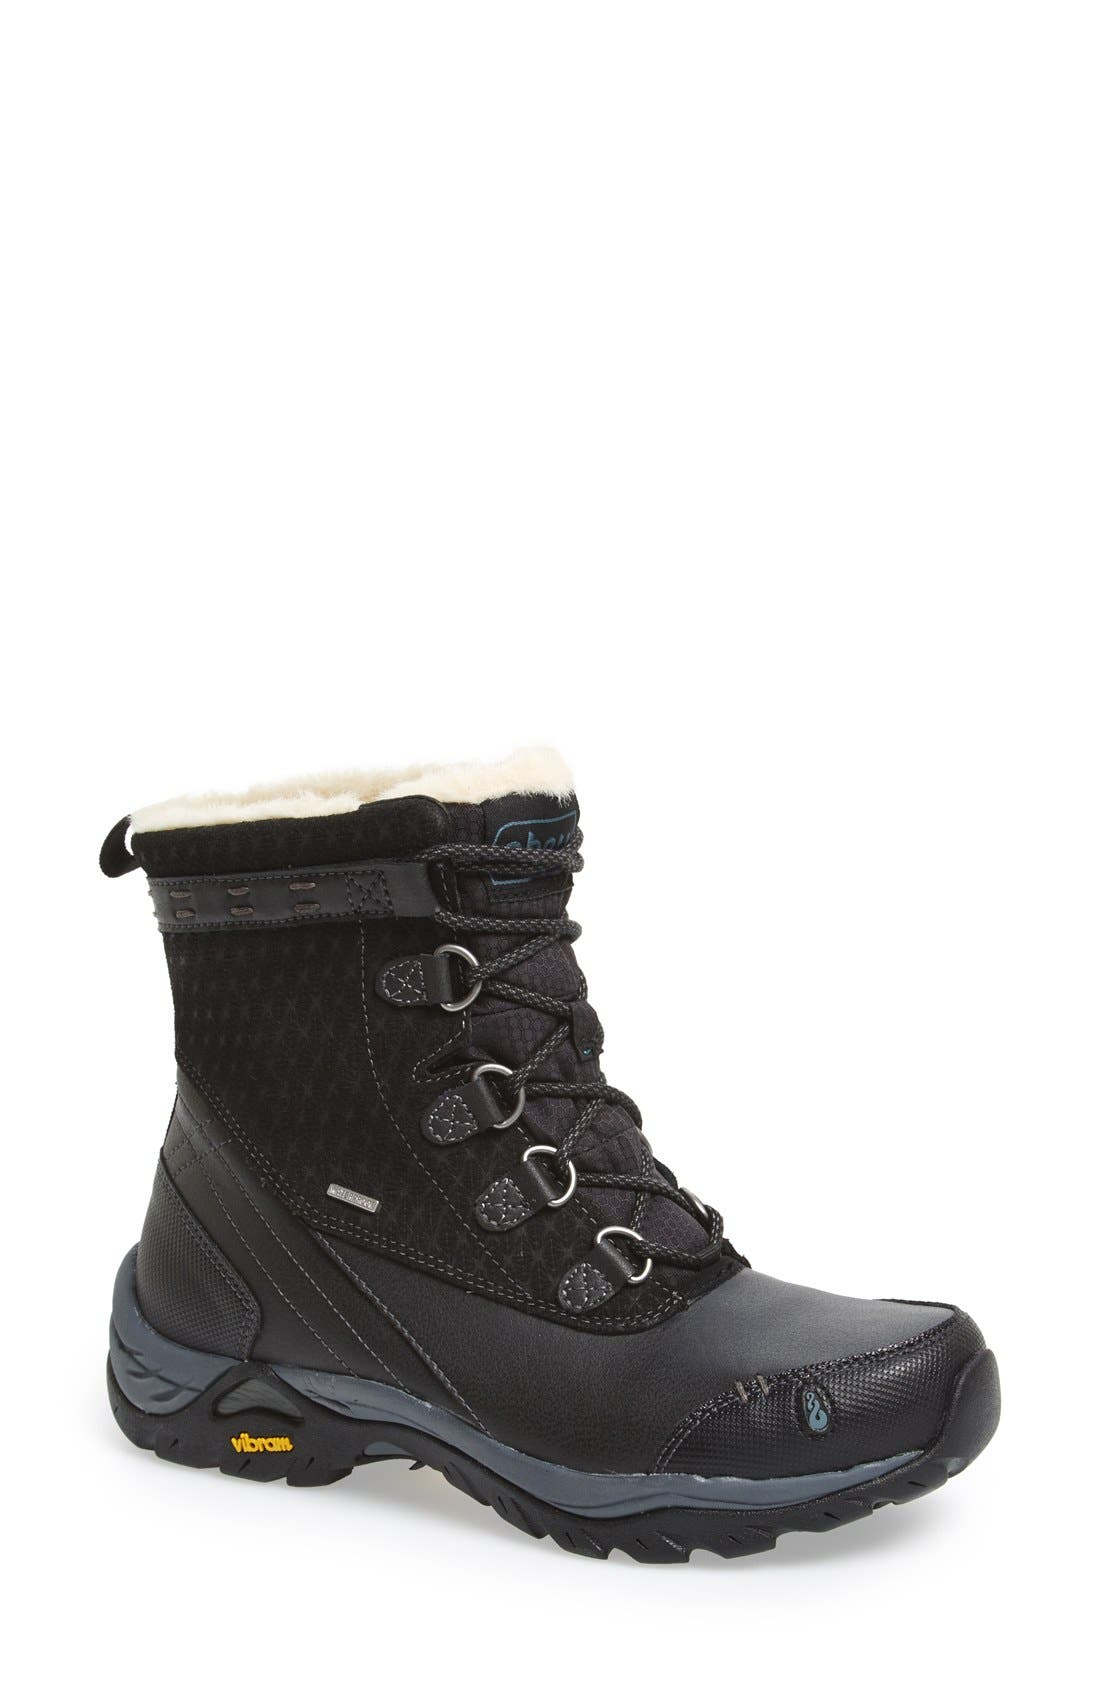 Alternate Image 1 Selected - Ahnu 'Twain Harte' Insulated Waterproof Boot (Women)